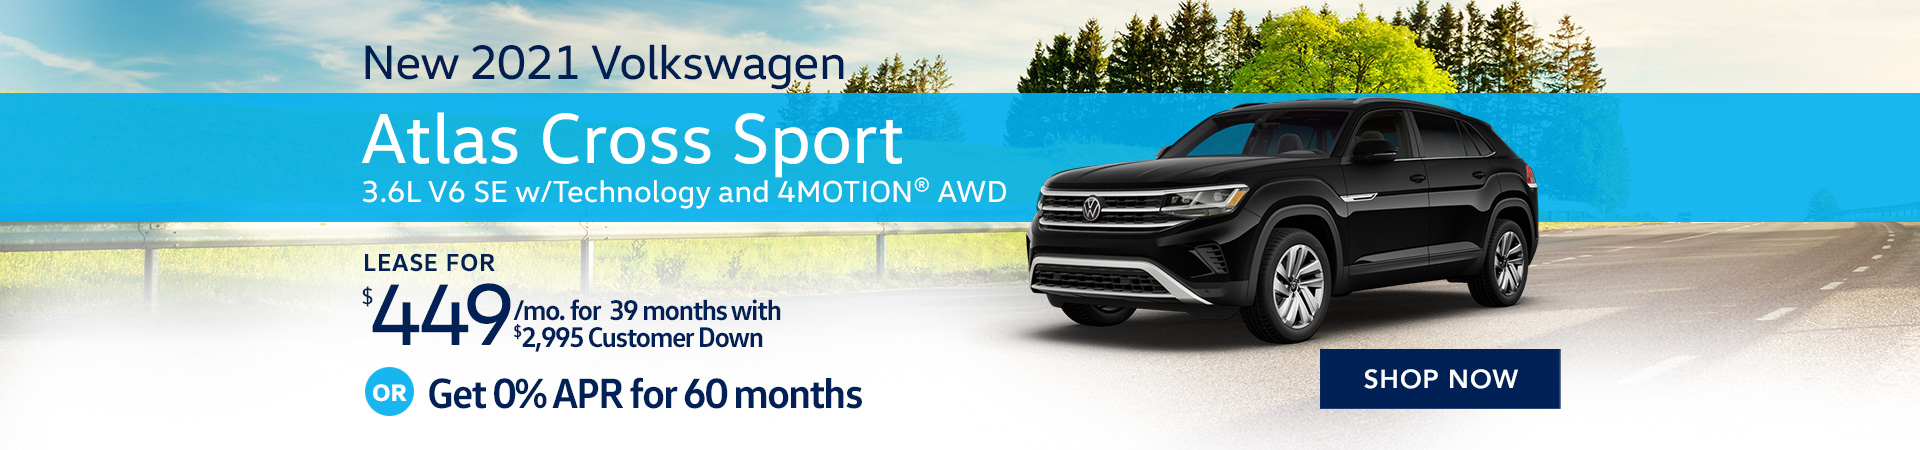 BVW_1920x450_New 2021 Volkswagen Atlas Cross Sport 3.6L V6 SE with Technology and 4MOTION® AWD _06'21